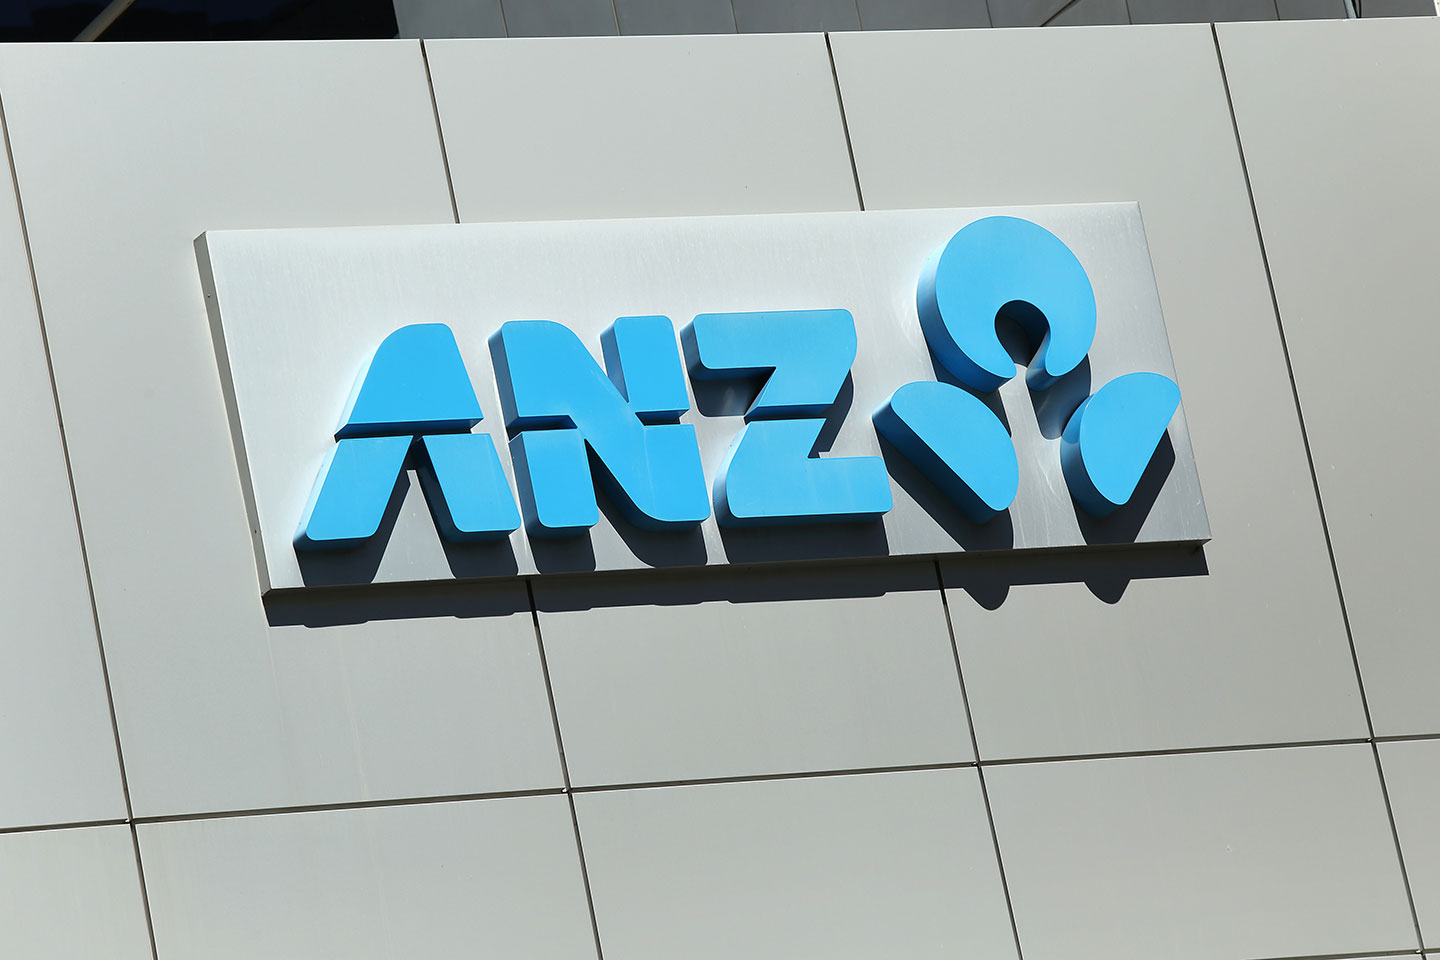 anz share investing - photo #35